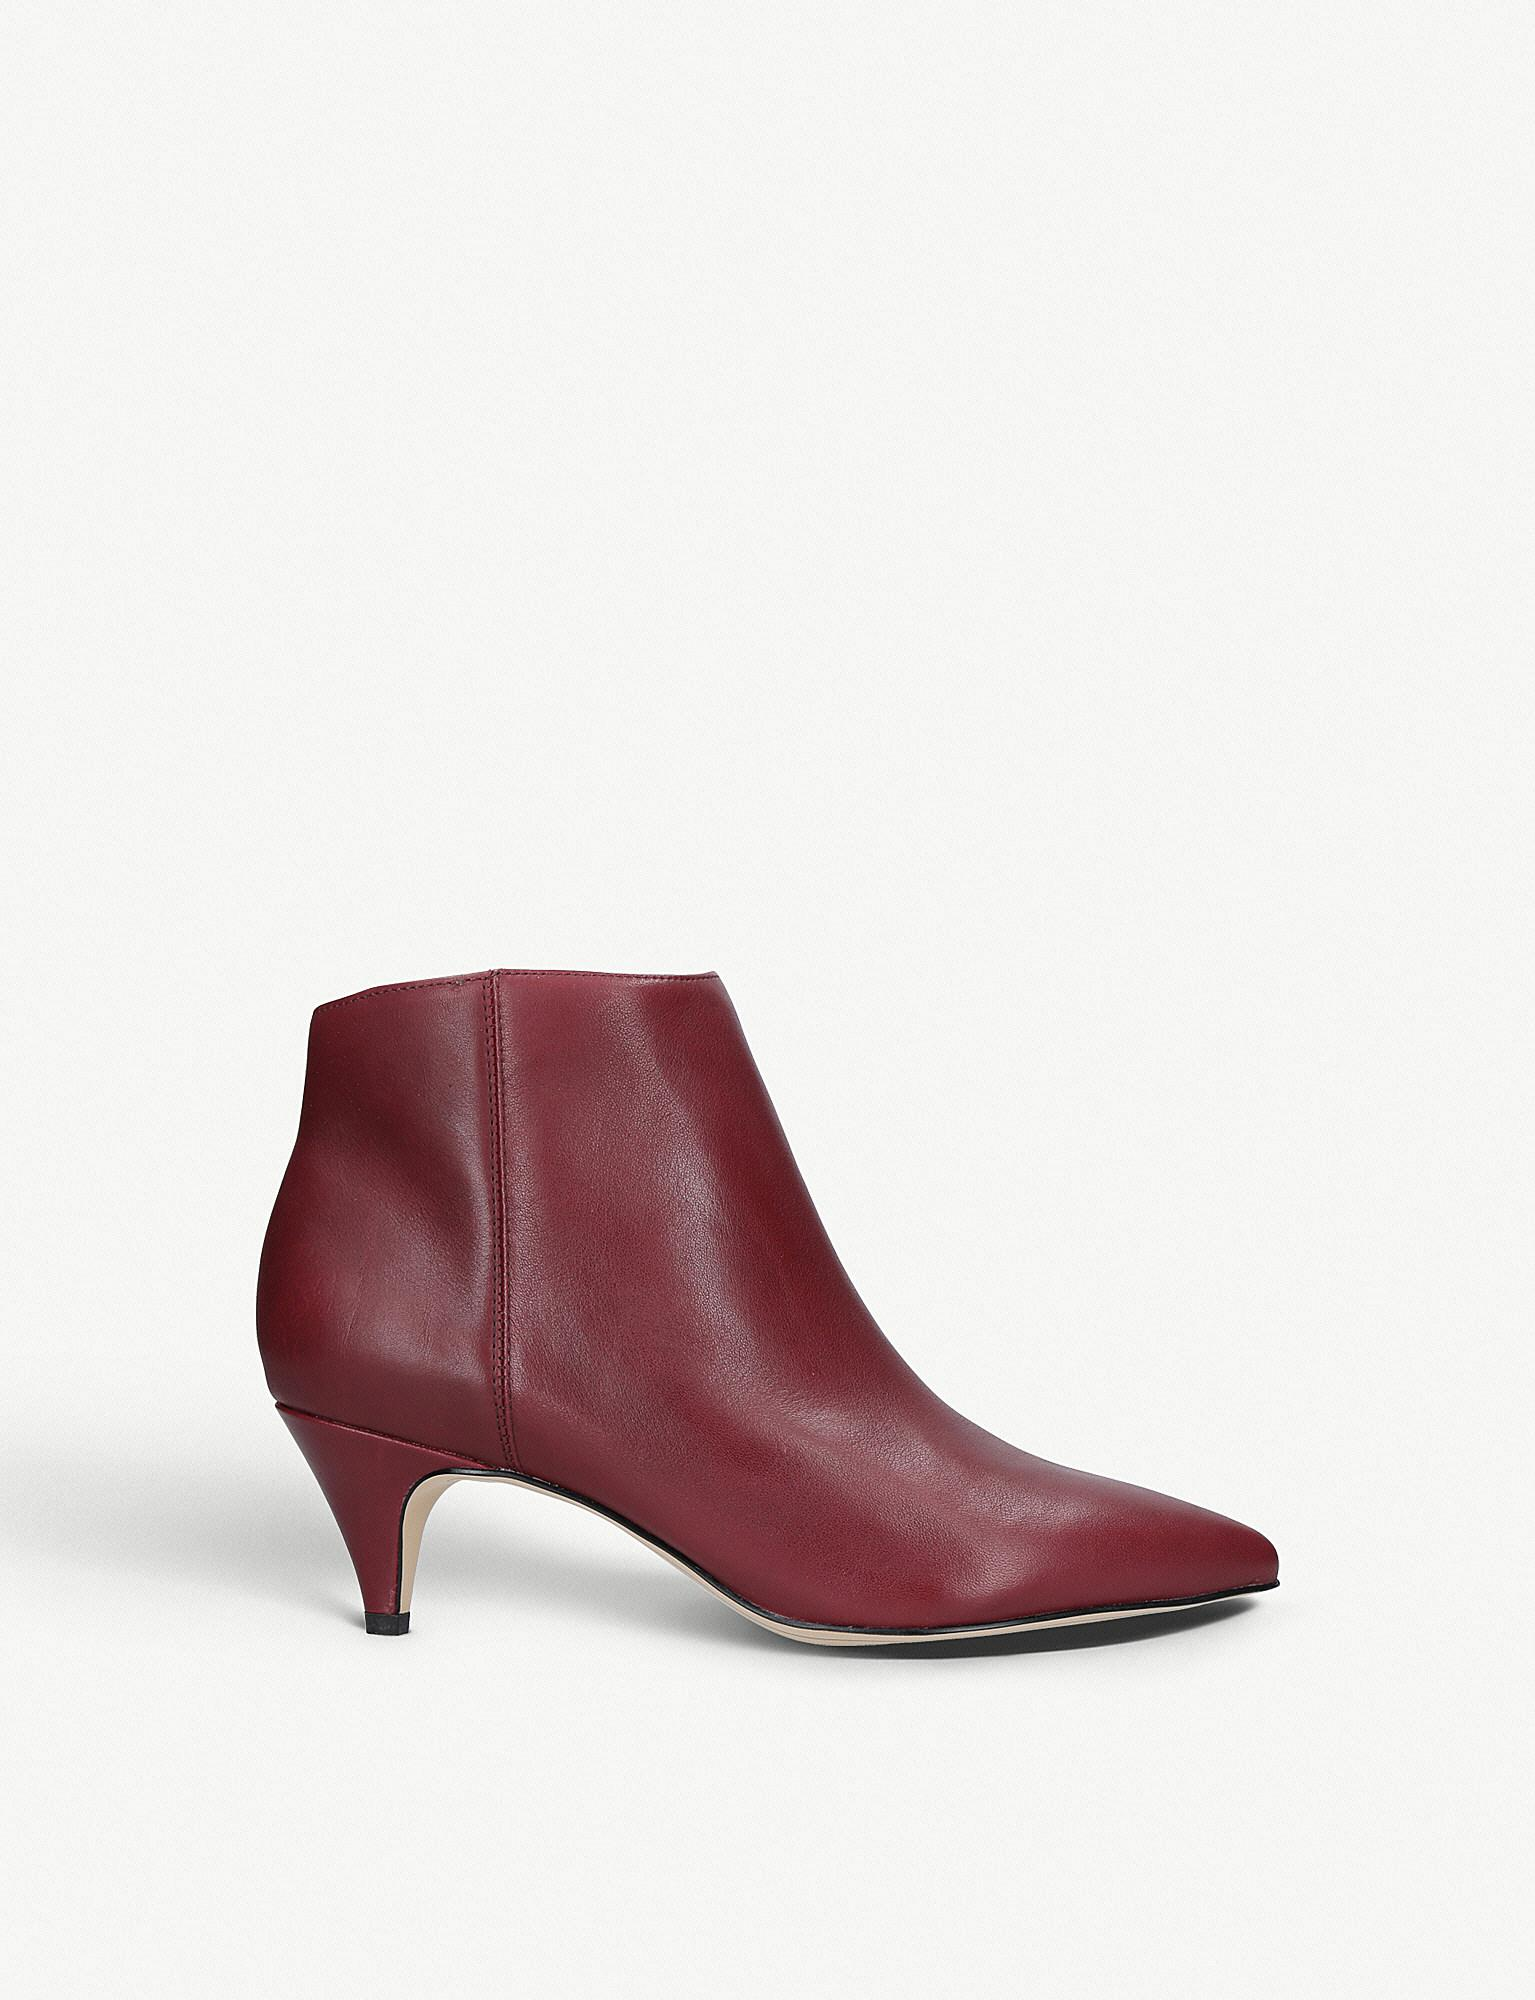 ae6568388818aa Sam Edelman Kinzey Leather Ankle Boots in Red - Lyst